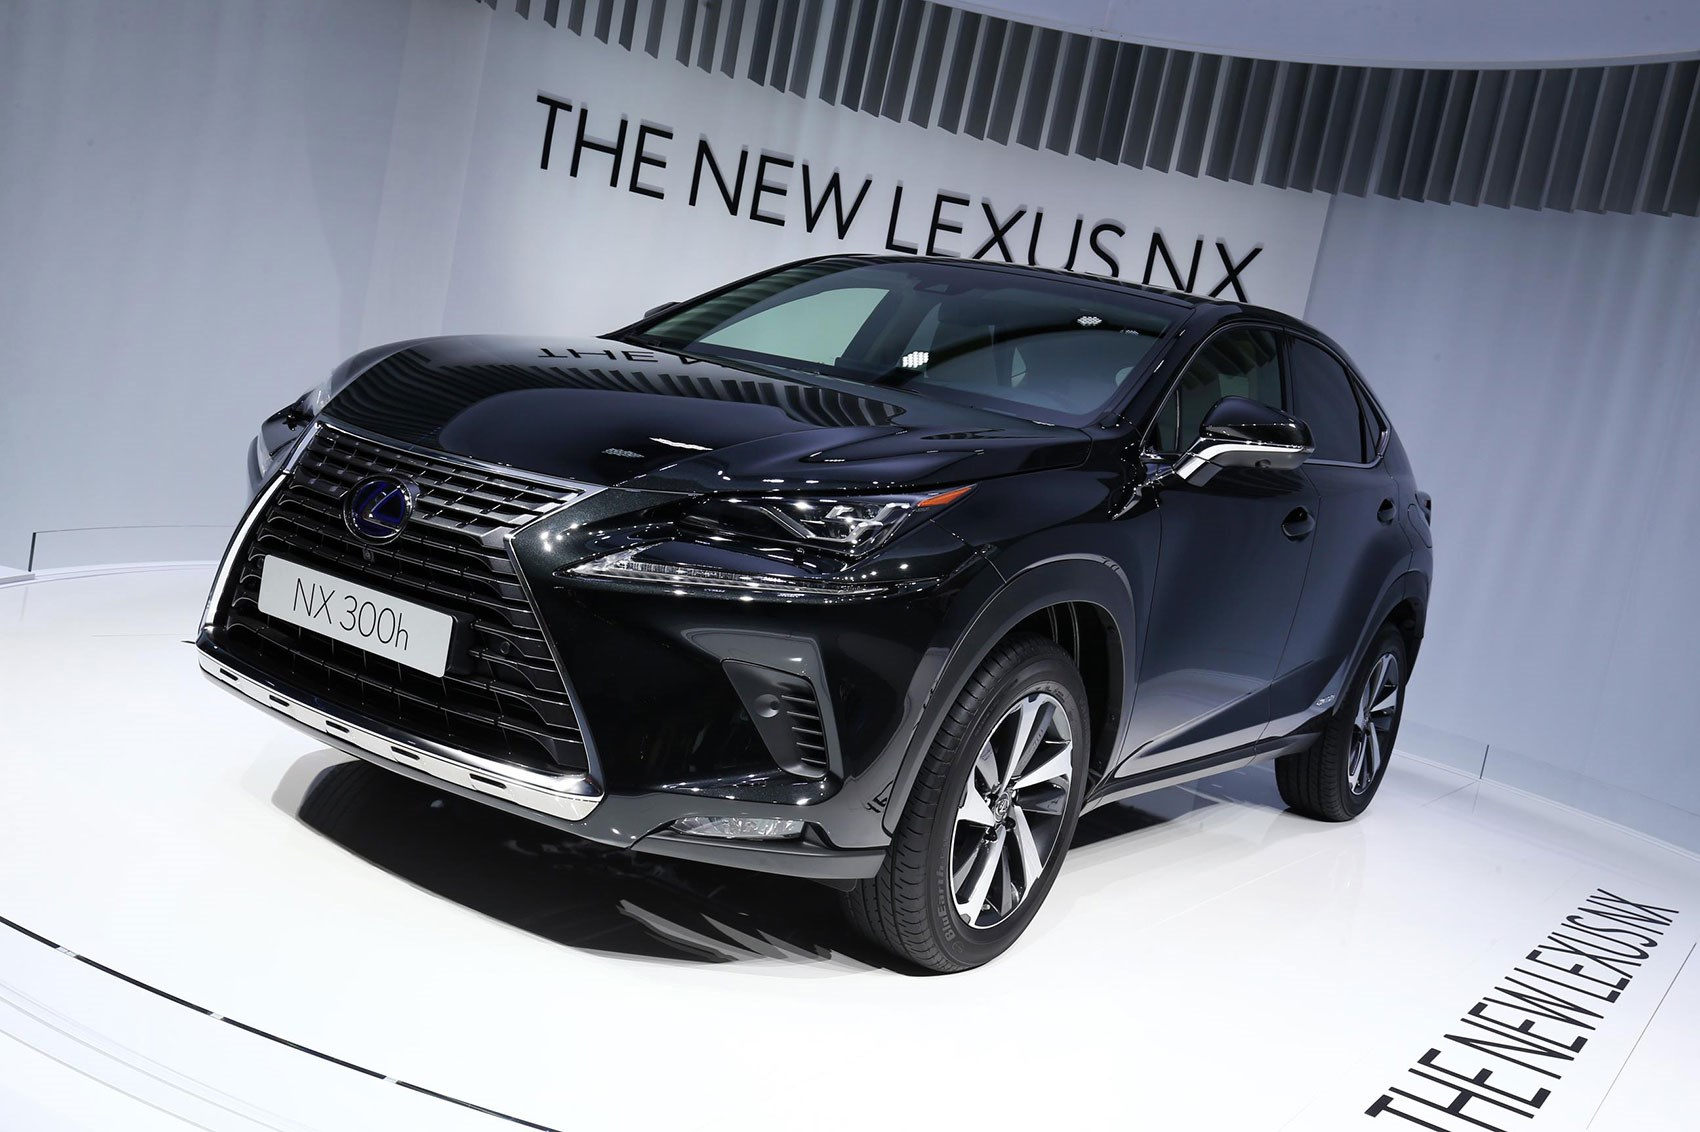 lexus nx facelift at 2017 frankfurt motor show pictures specs details by car magazine. Black Bedroom Furniture Sets. Home Design Ideas